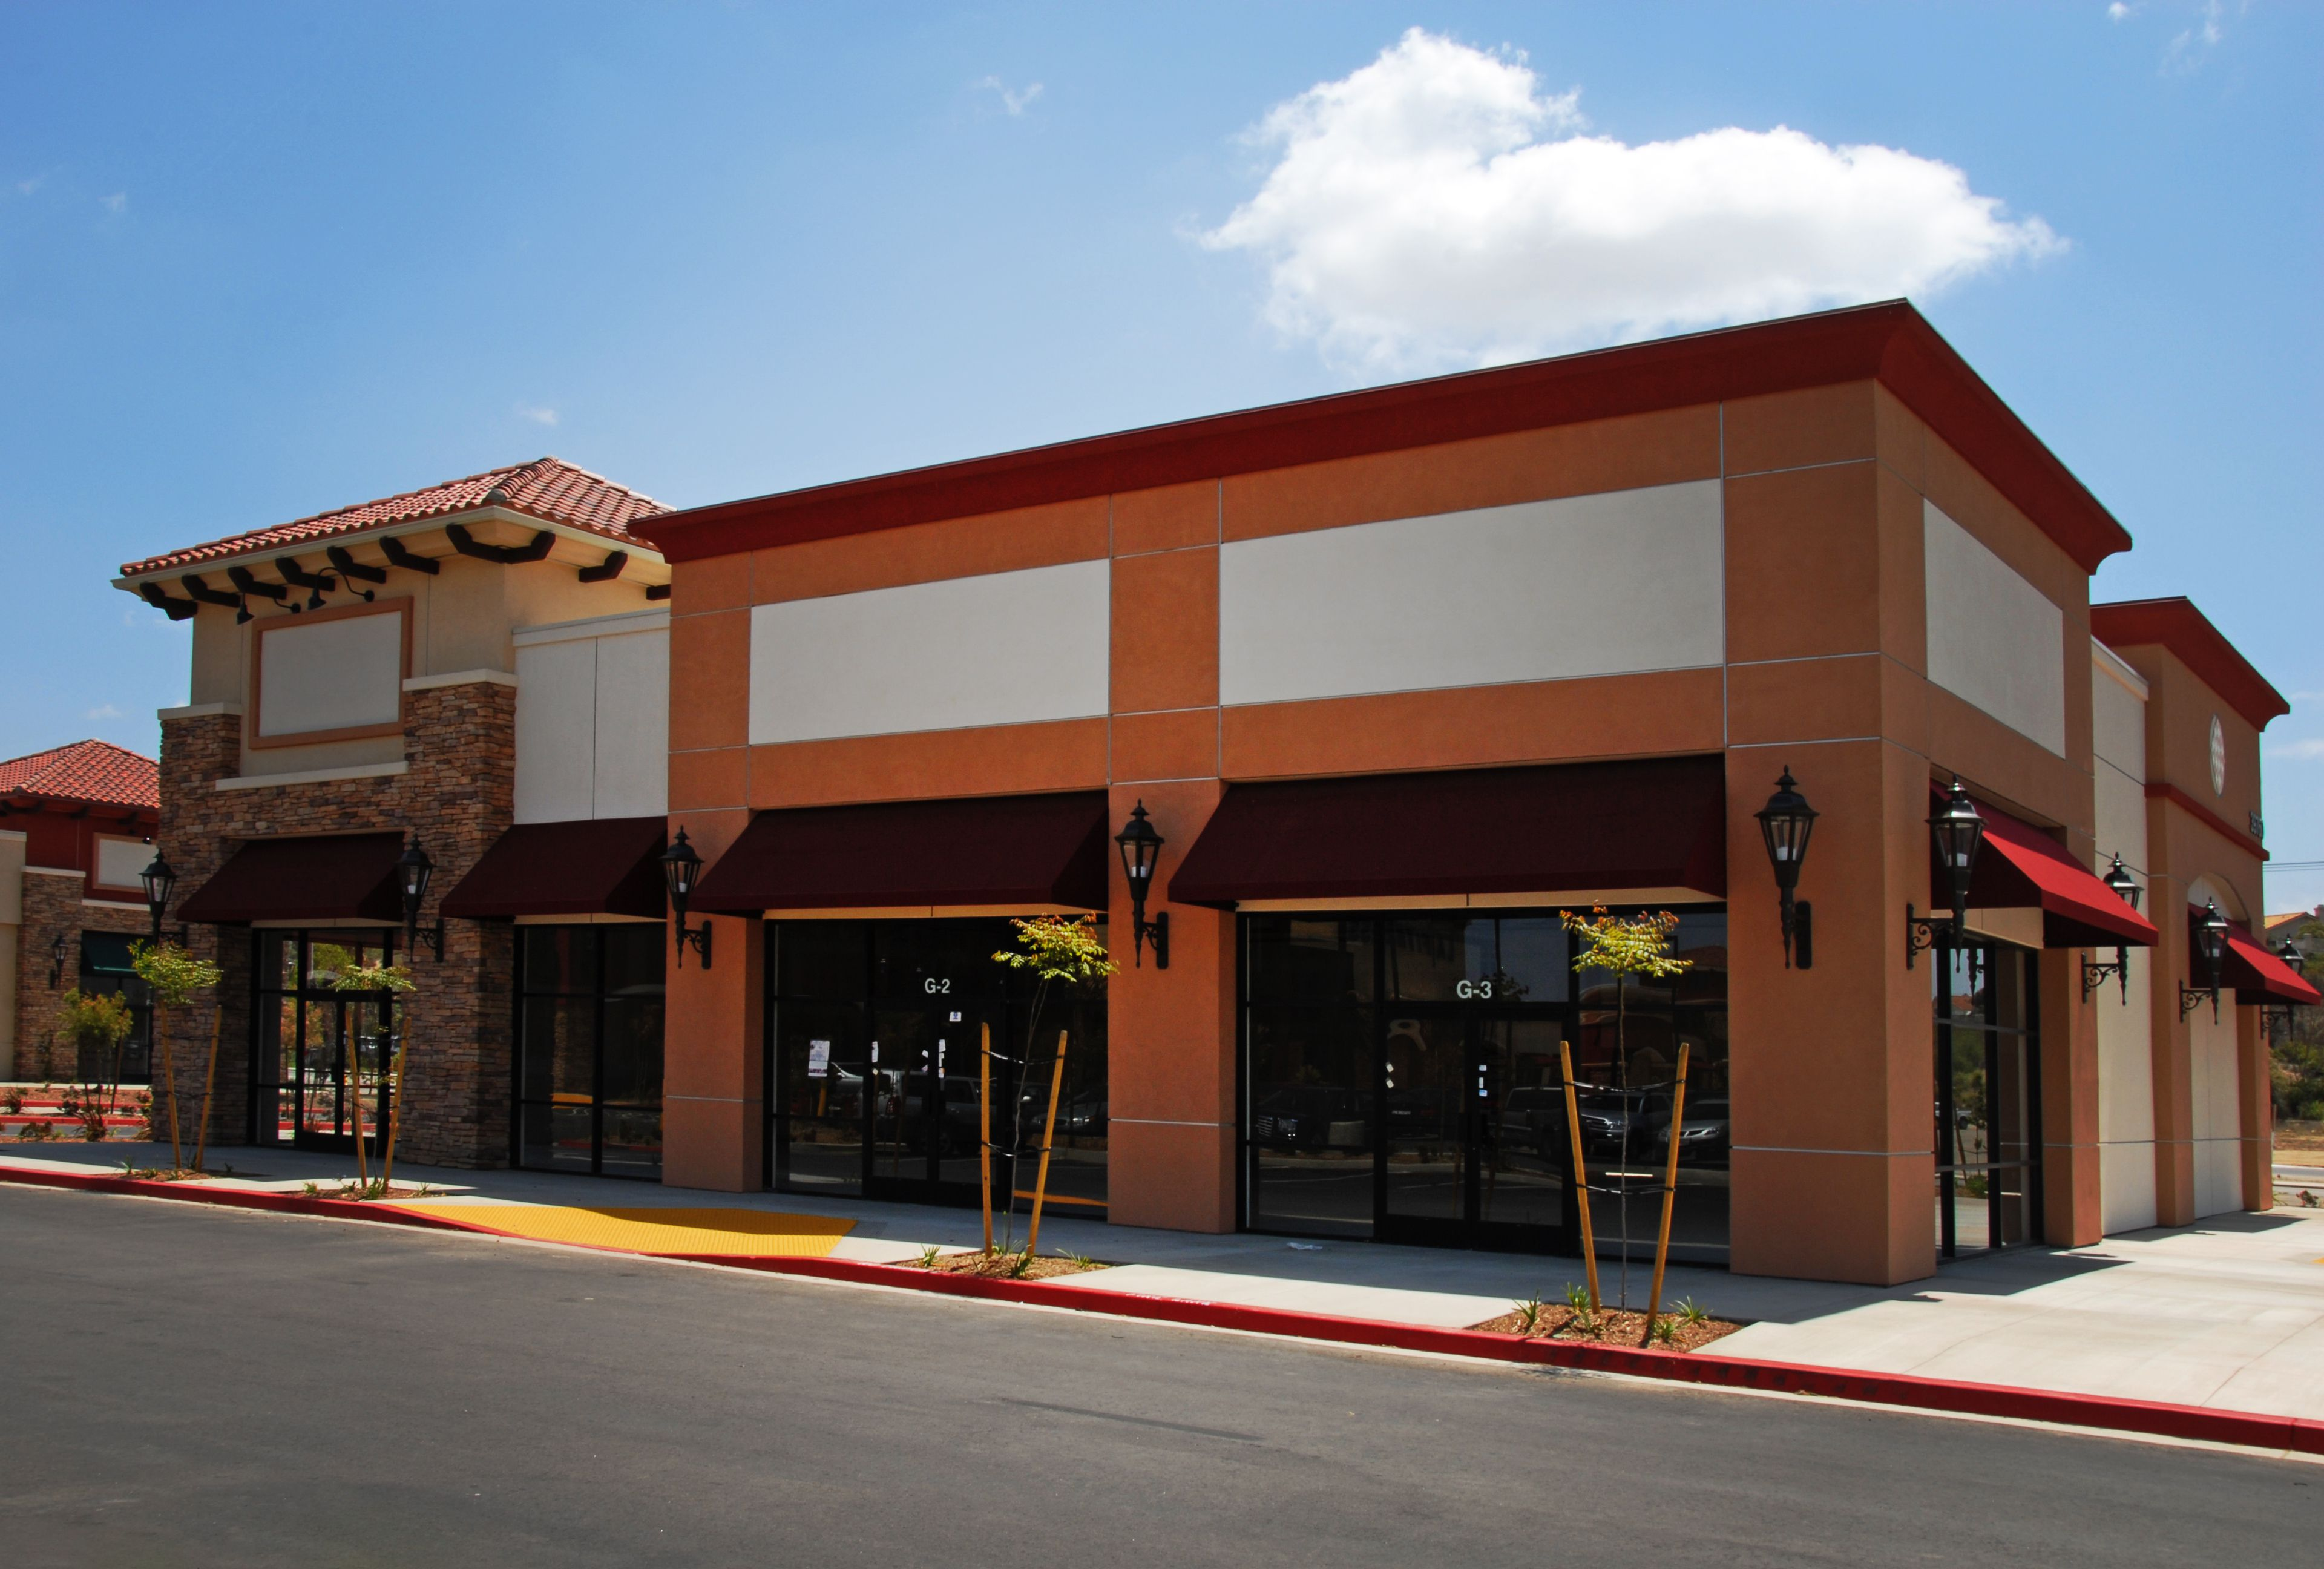 brick and mortar stores meaning